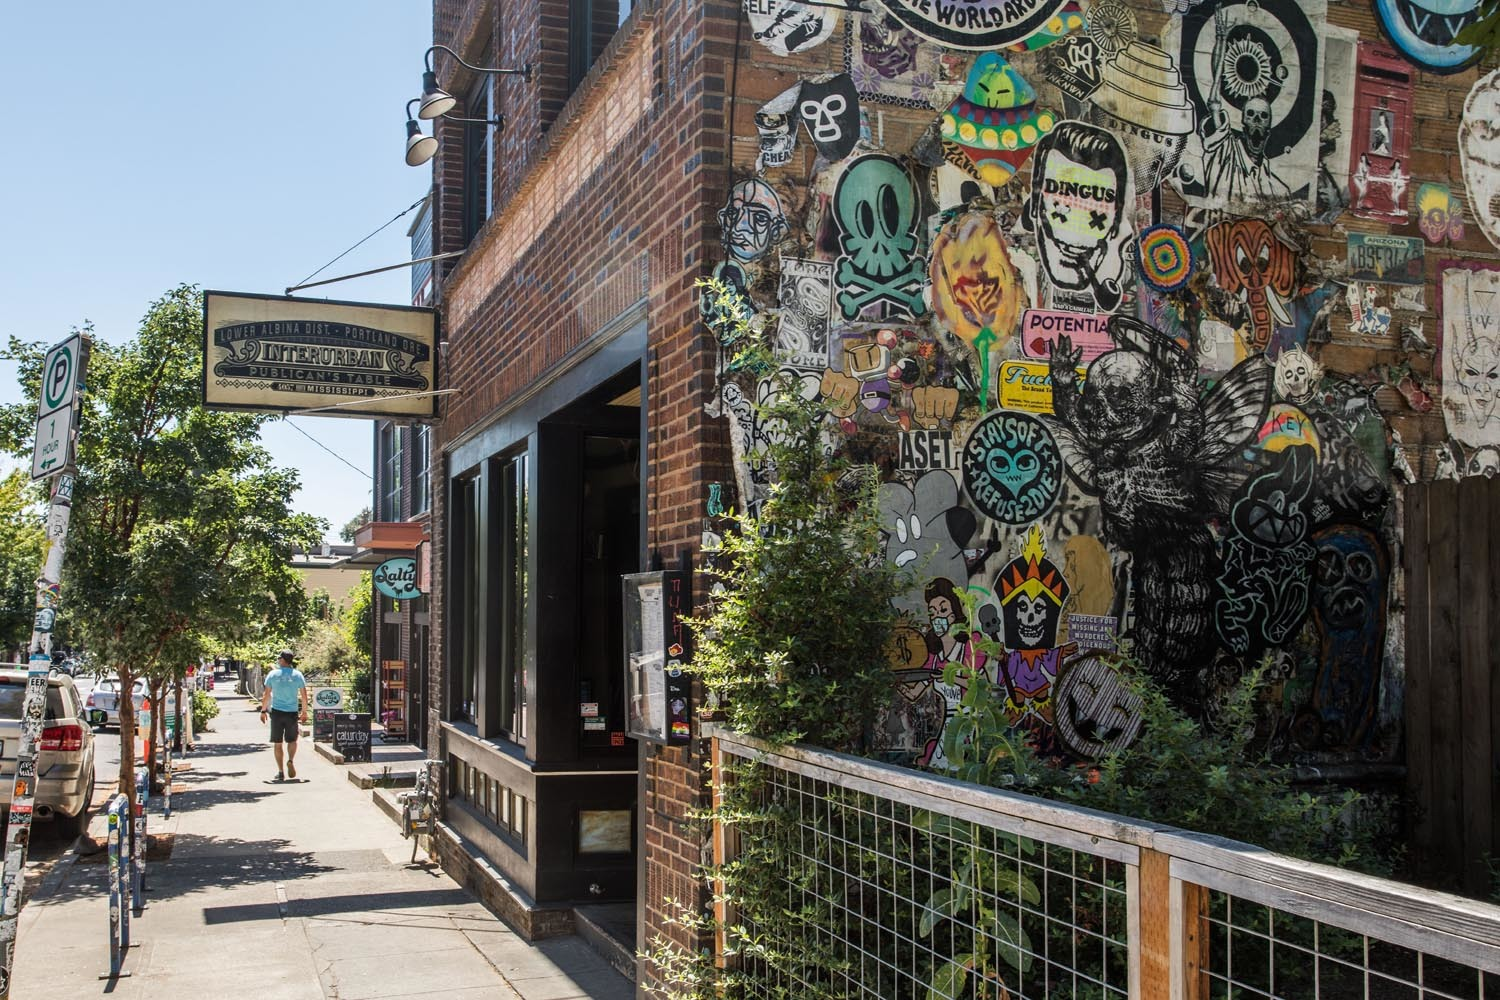 brick building exterior with street art and trees